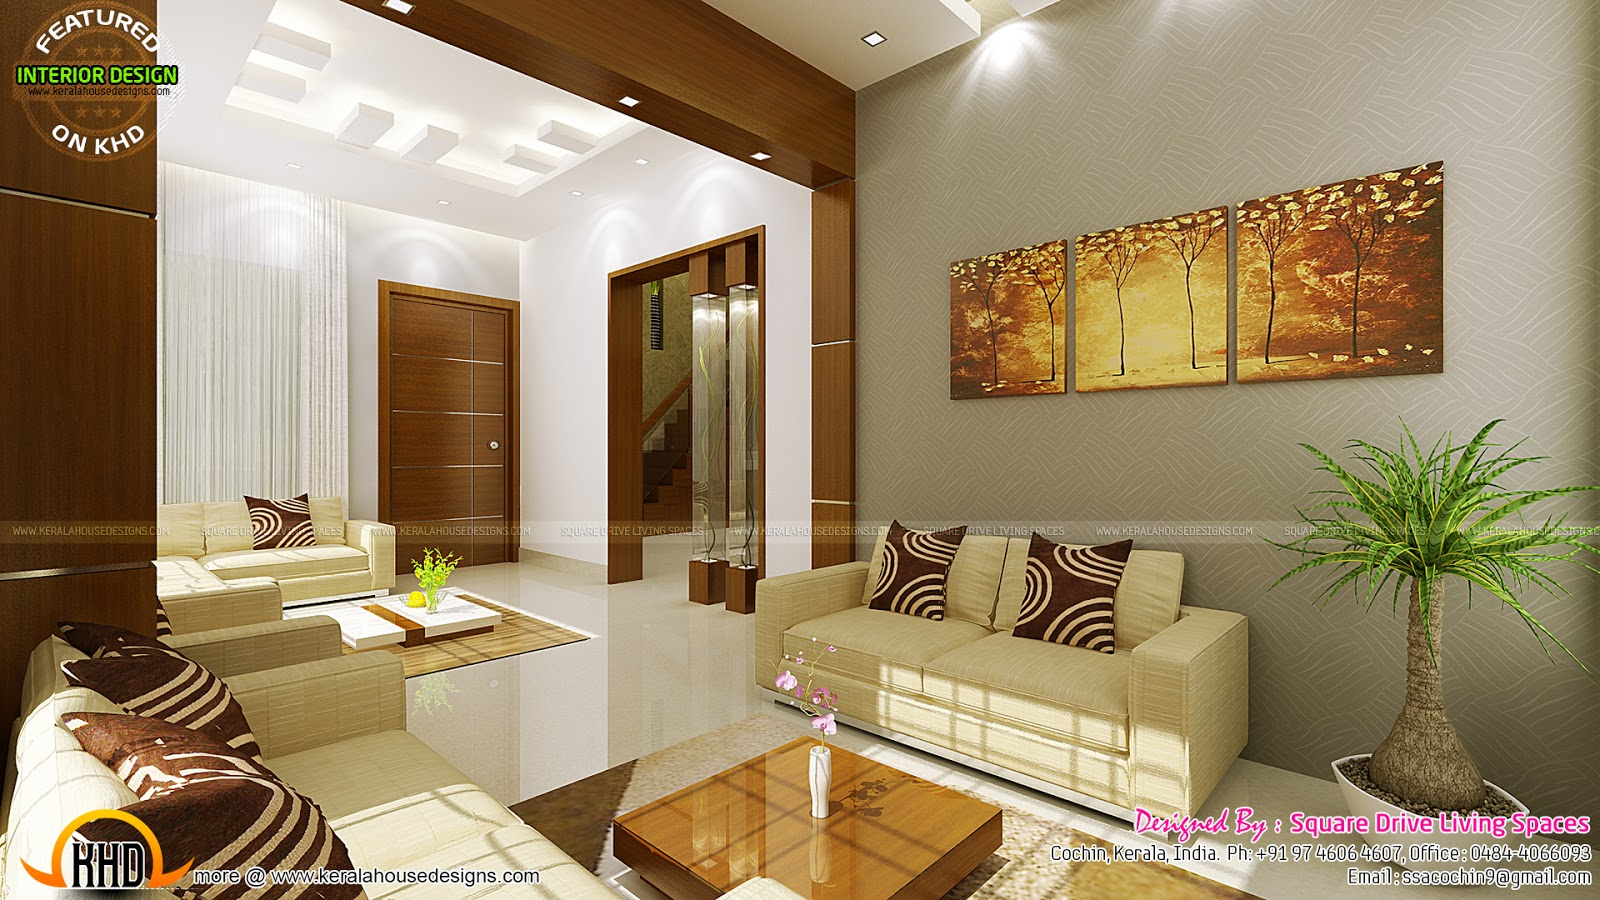 Contemporary kitchen dining and living room kerala home for Indoor home design picture